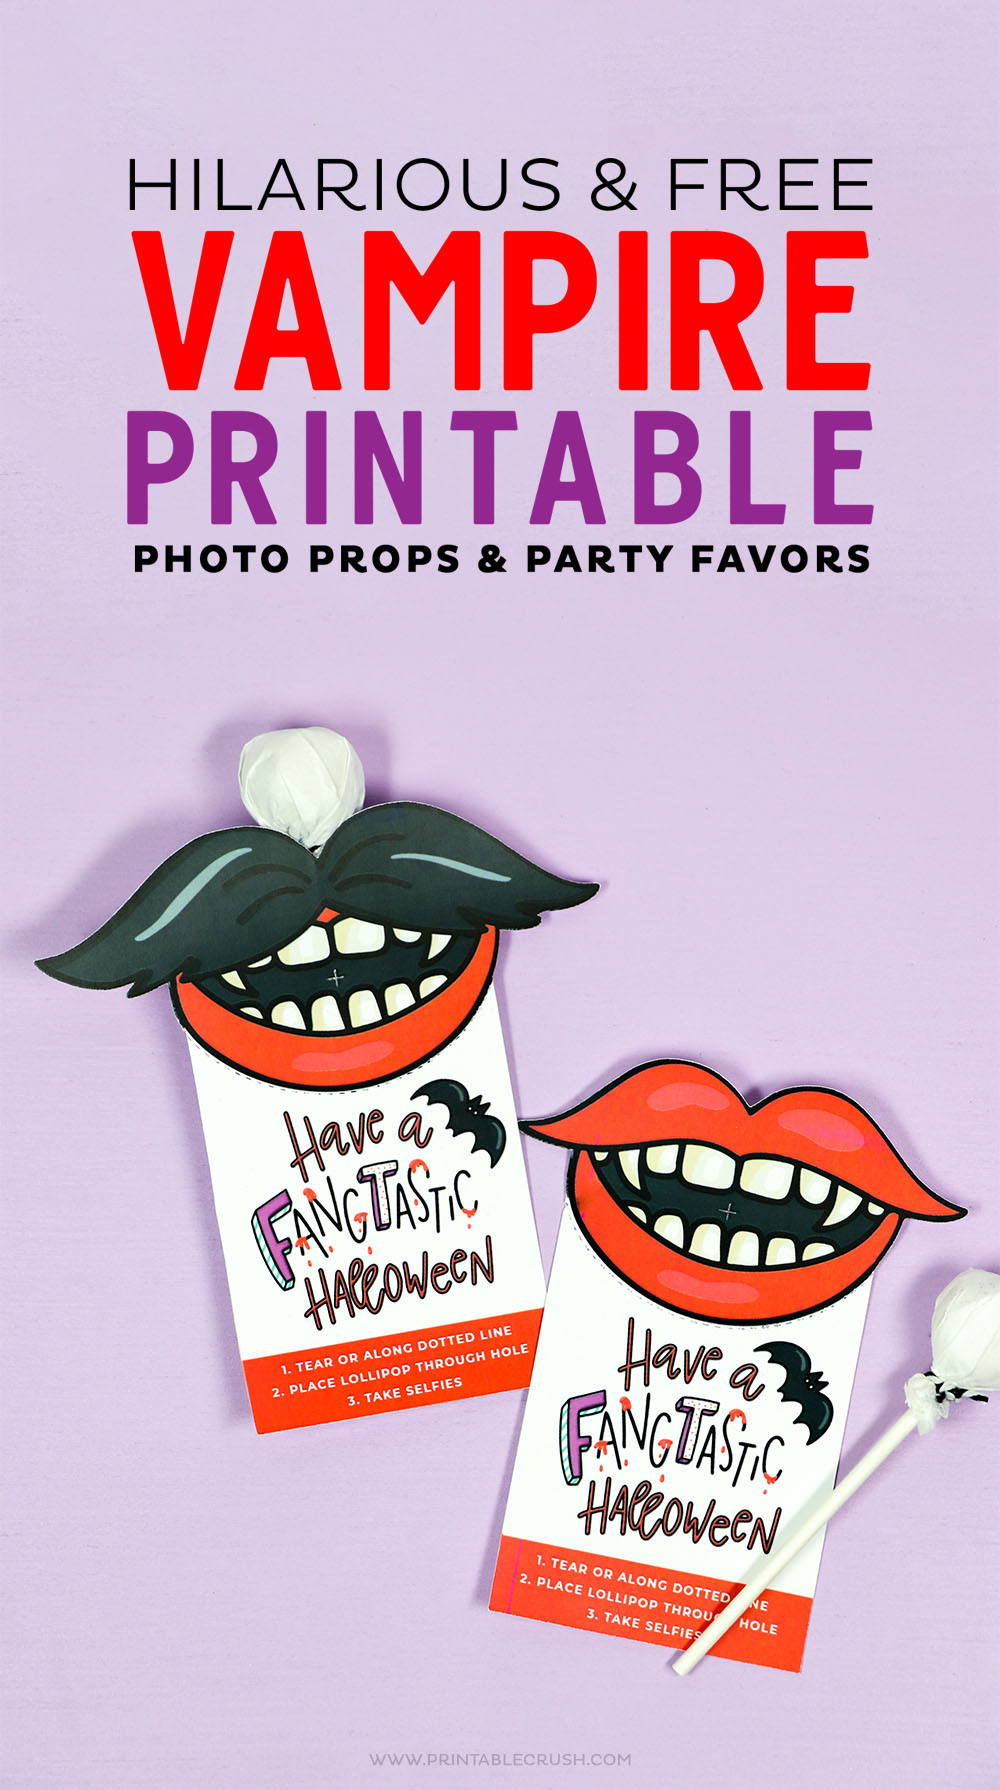 These Hilarious FREE Vampire Printable photo props can also double as a Halloween party favor!